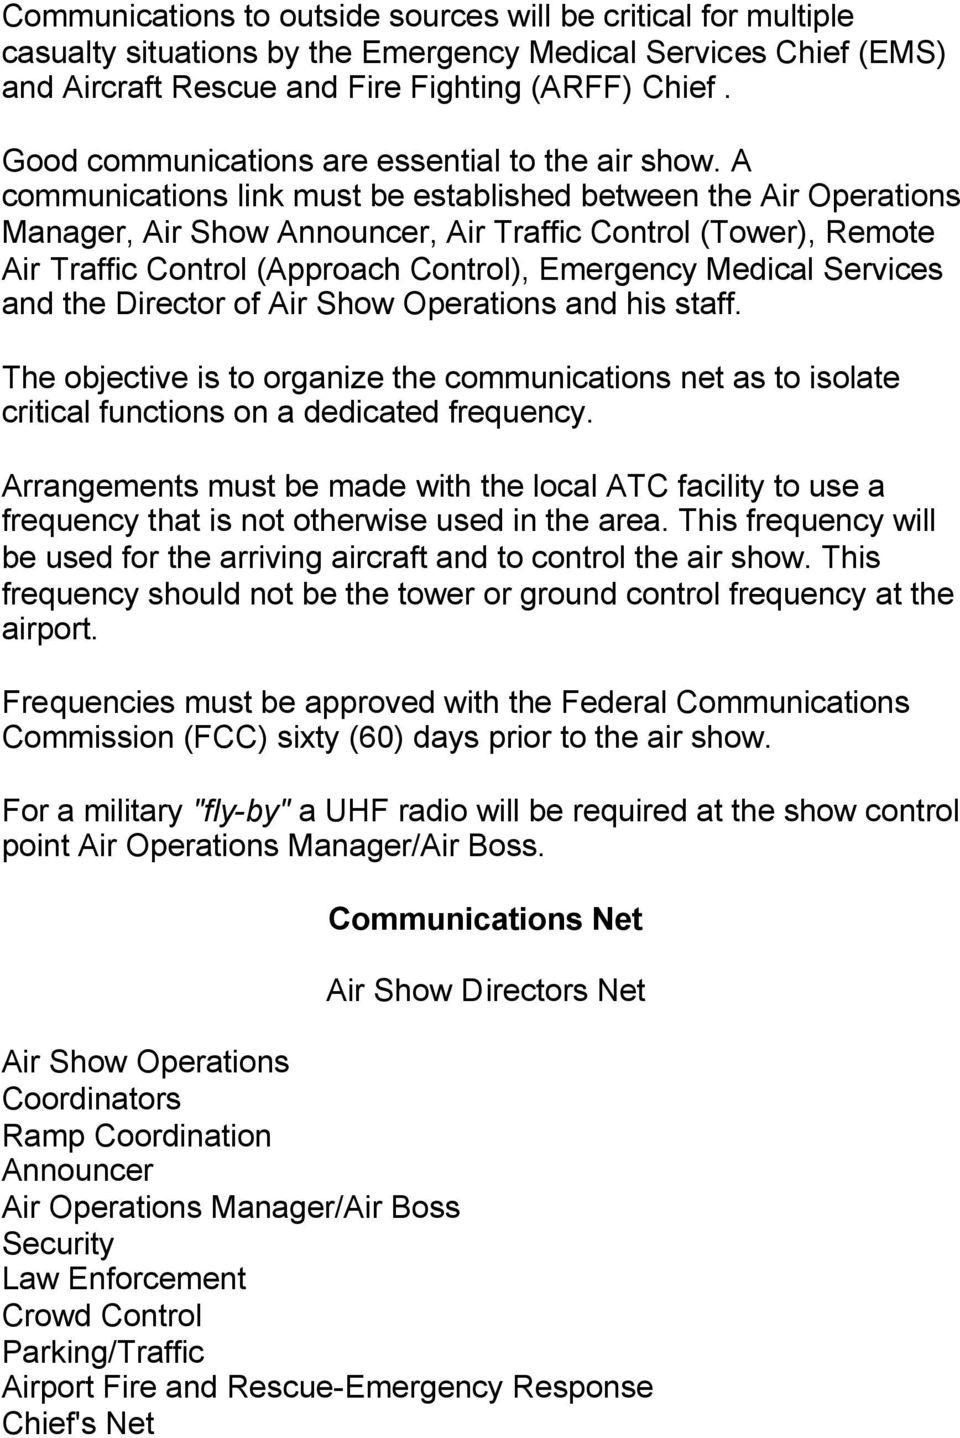 A communications link must be established between the Air Operations Manager, Air Show Announcer, Air Traffic Control (Tower), Remote Air Traffic Control (Approach Control), Emergency Medical